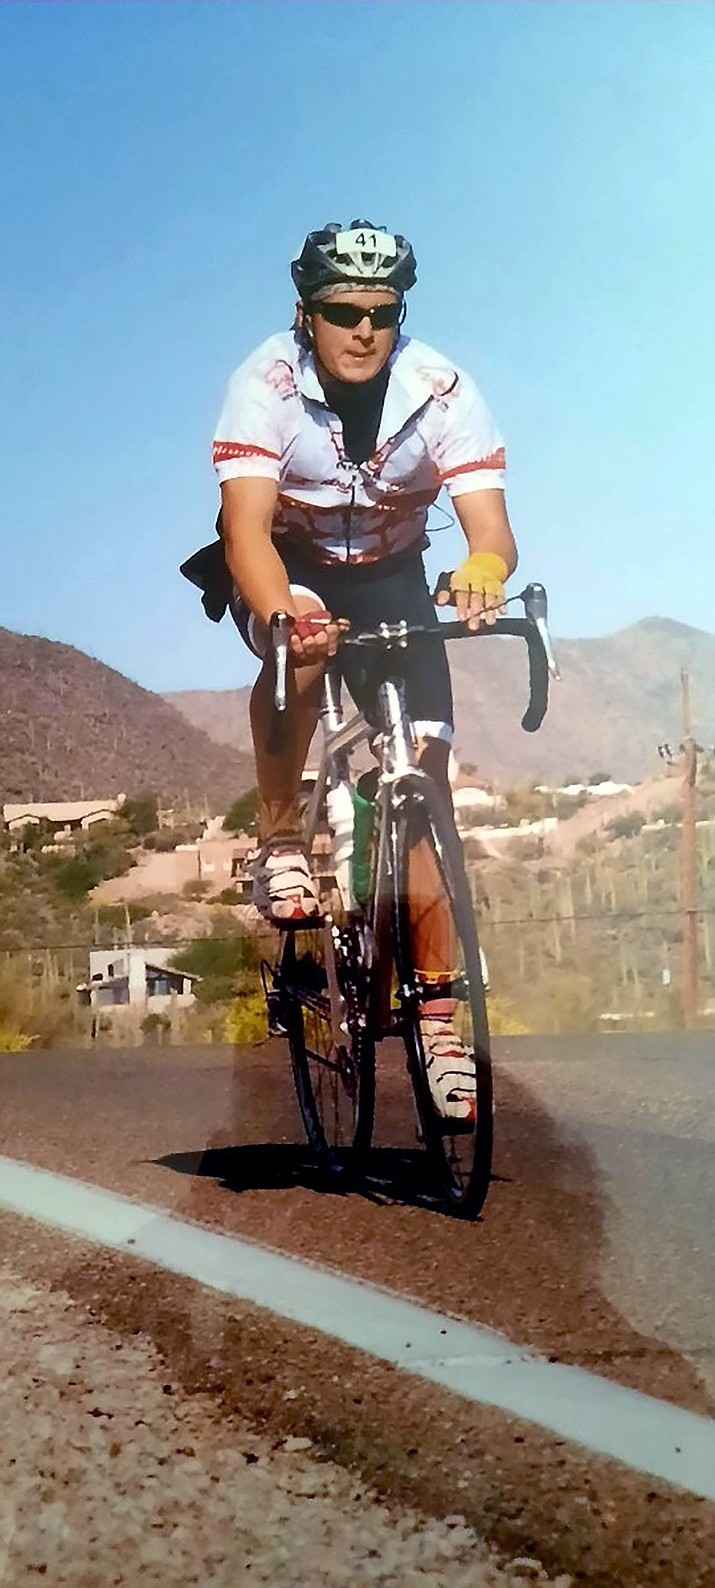 Jacob Guerrero, 31, of Tucson was a free-spirit who loved long-distance bike rides and much more. He was experimenting with marijuana and cocaine, and assured his mother he wasn't an addict and was cautious about what he ingested. (Courtesy photo)